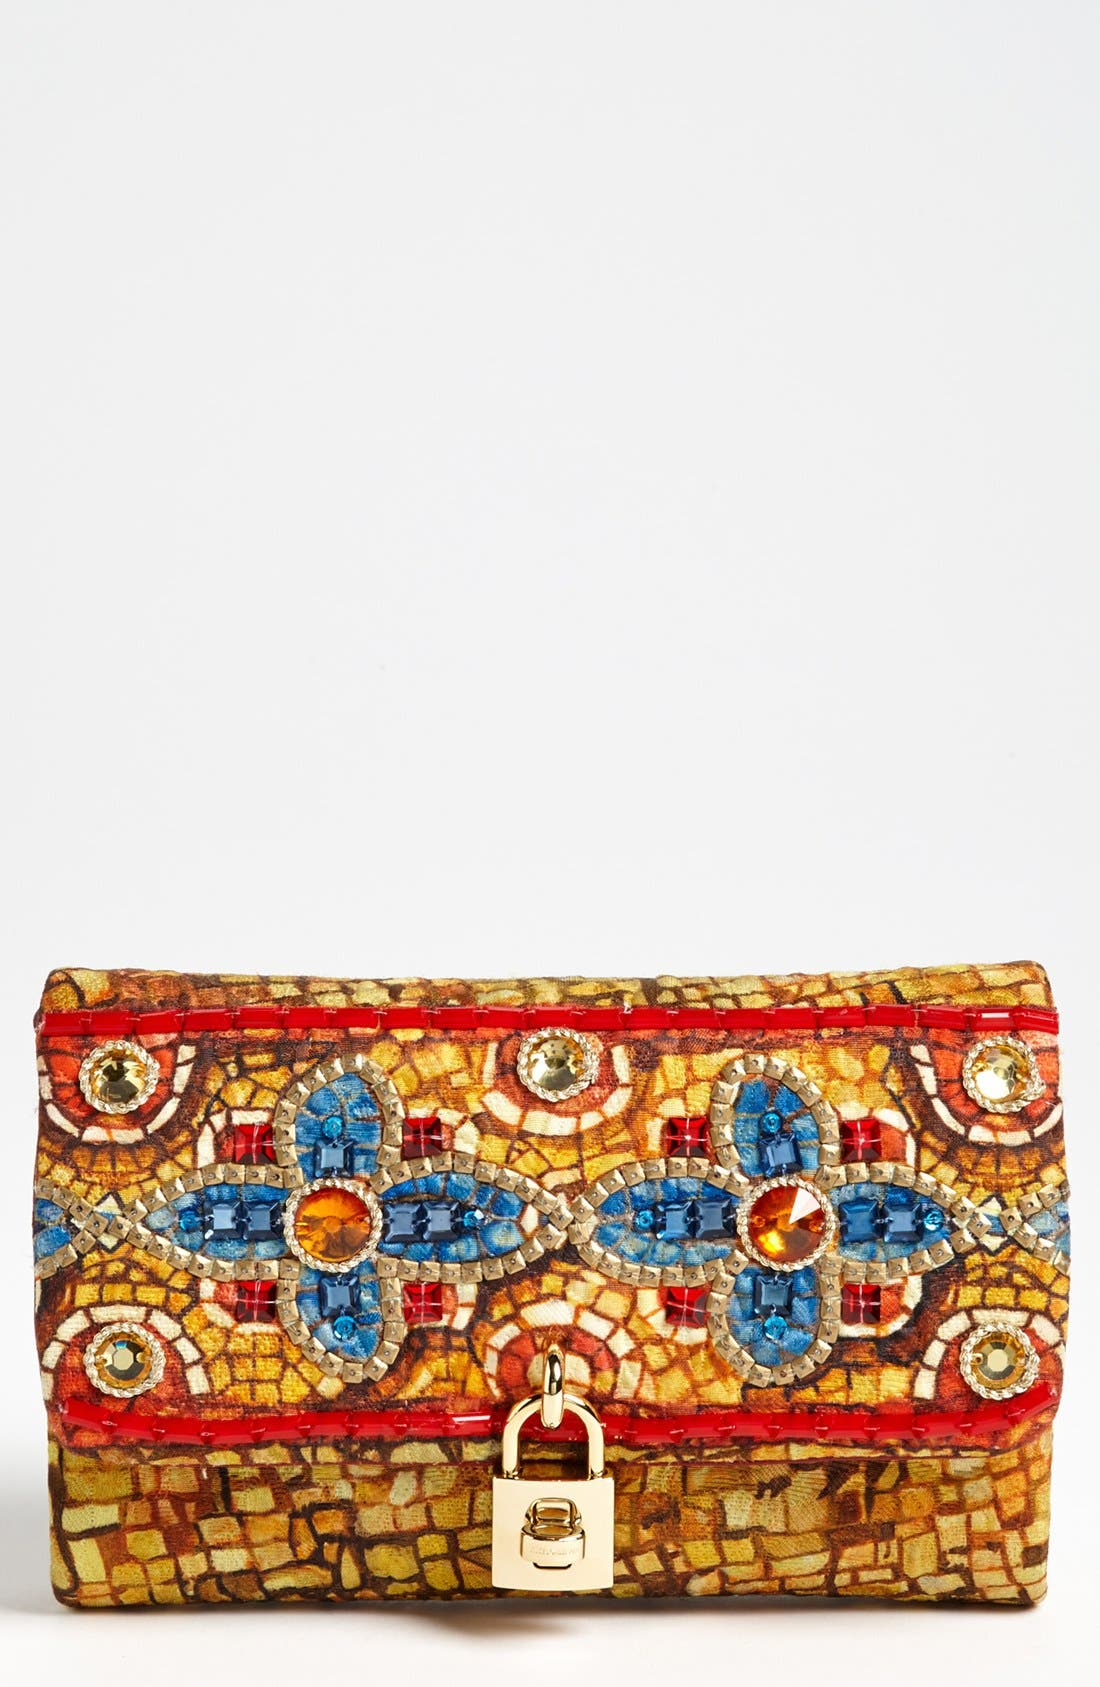 Main Image - Dolce&Gabbana 'Miss Dolce - Greek Mosaic' Shoulder Bag